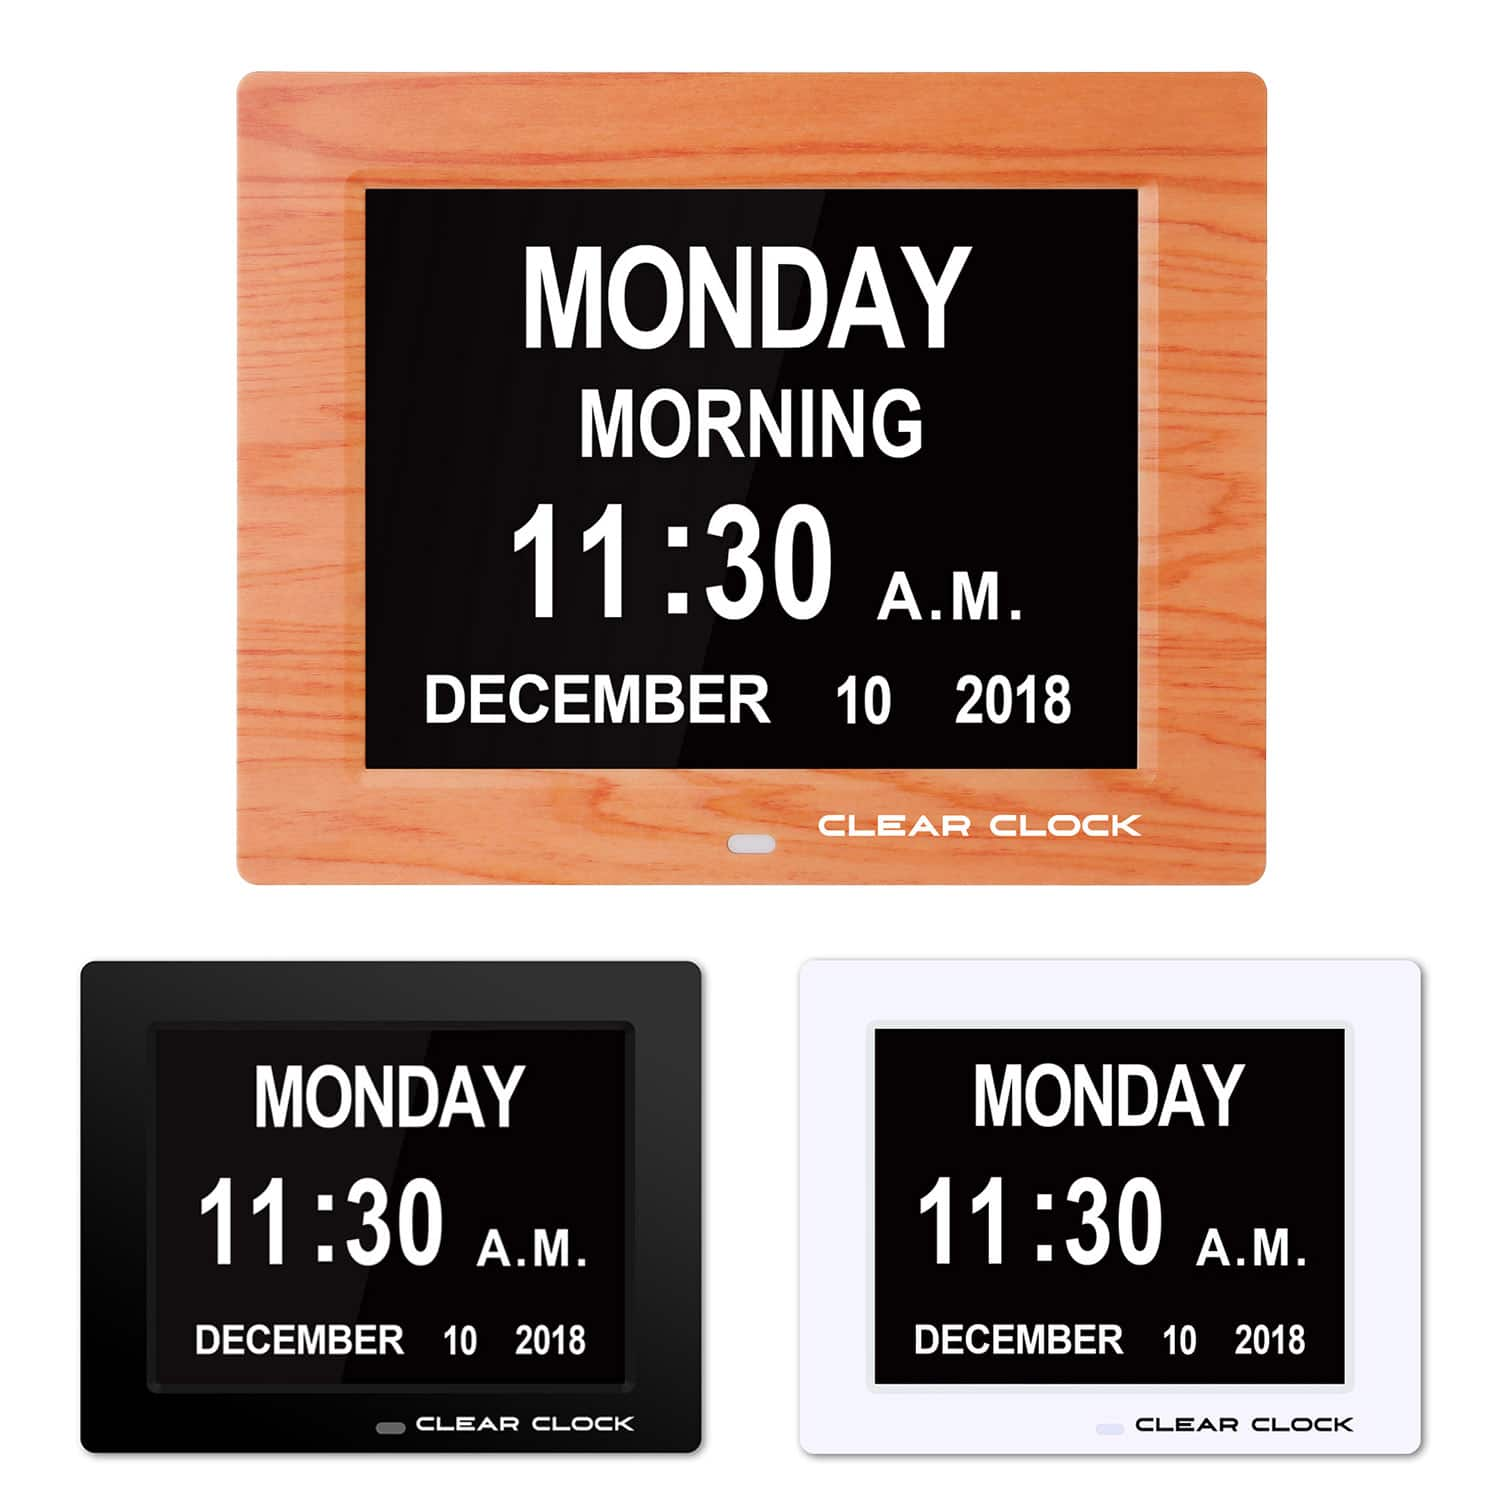 Clear Clock Digital Memory Loss Clock Great for the elderly and vision impaired large display No Abbreviations $34.99